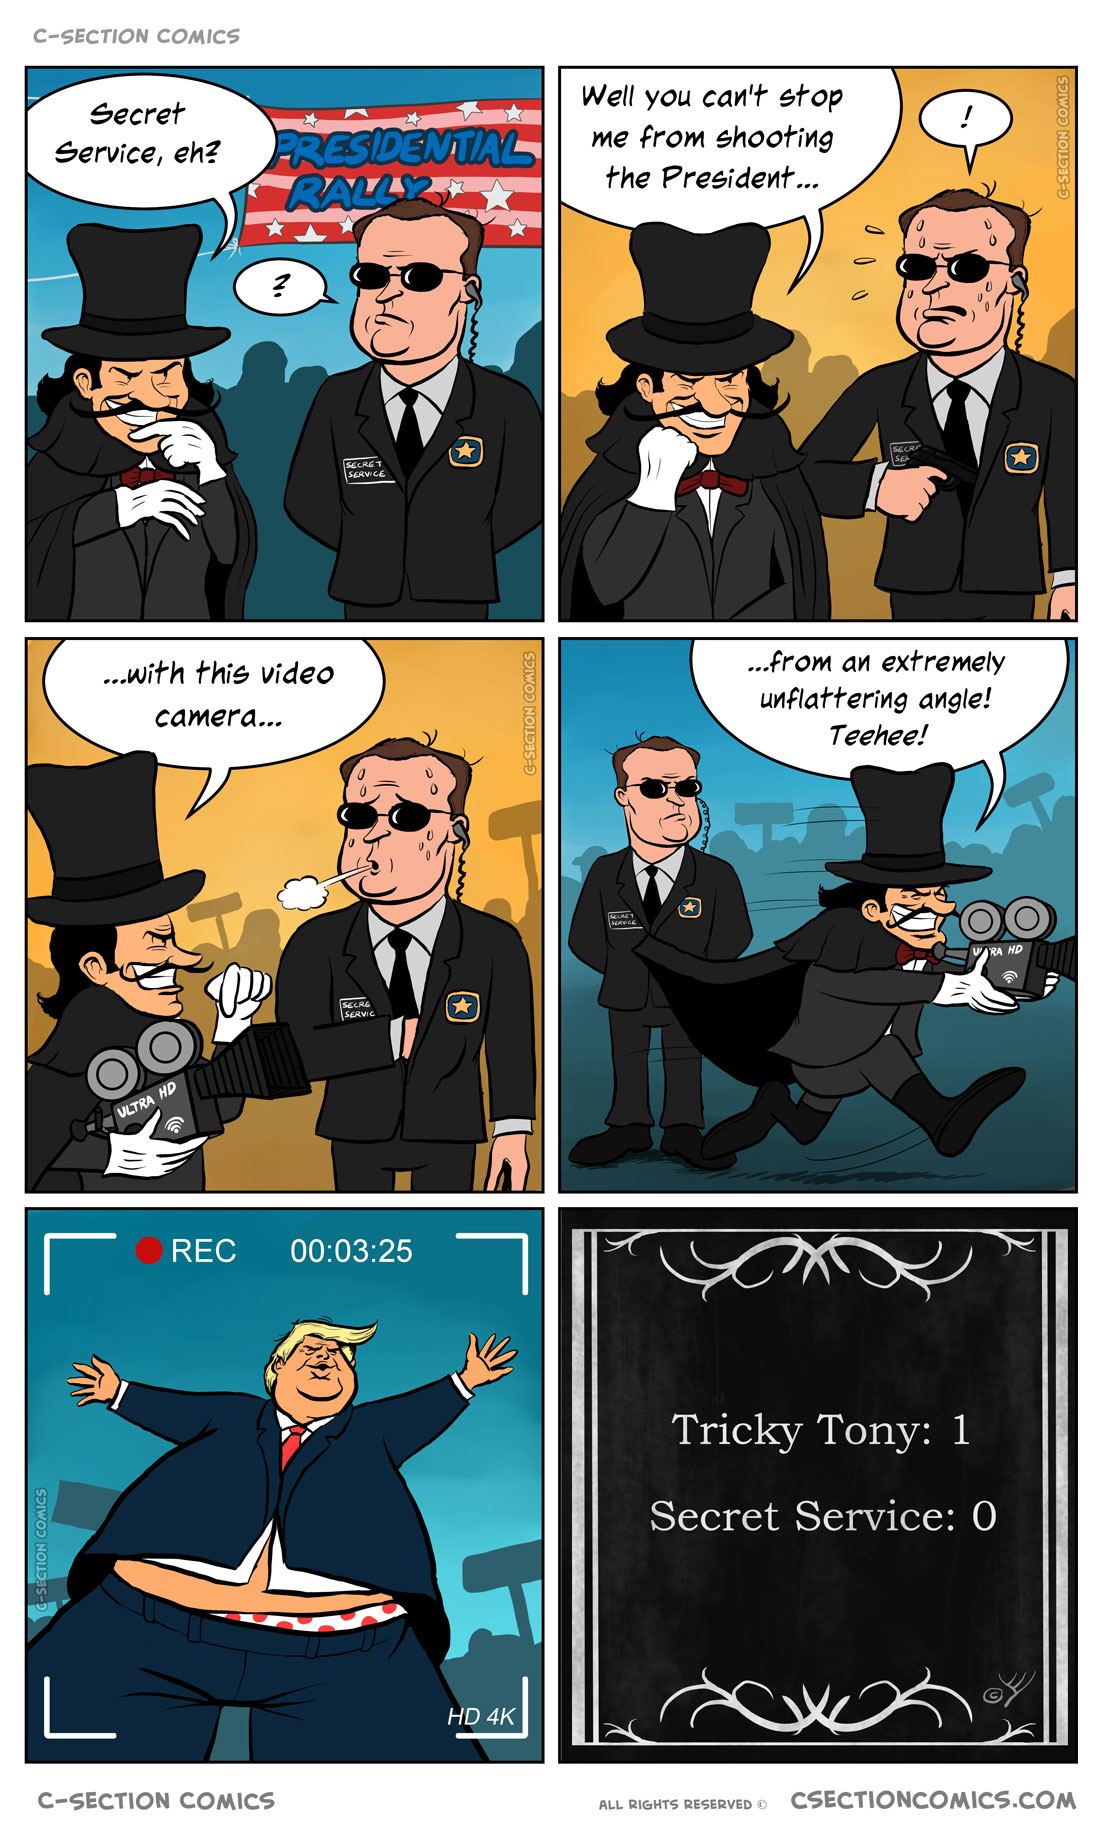 Tricky Tony vs. the Secret Service